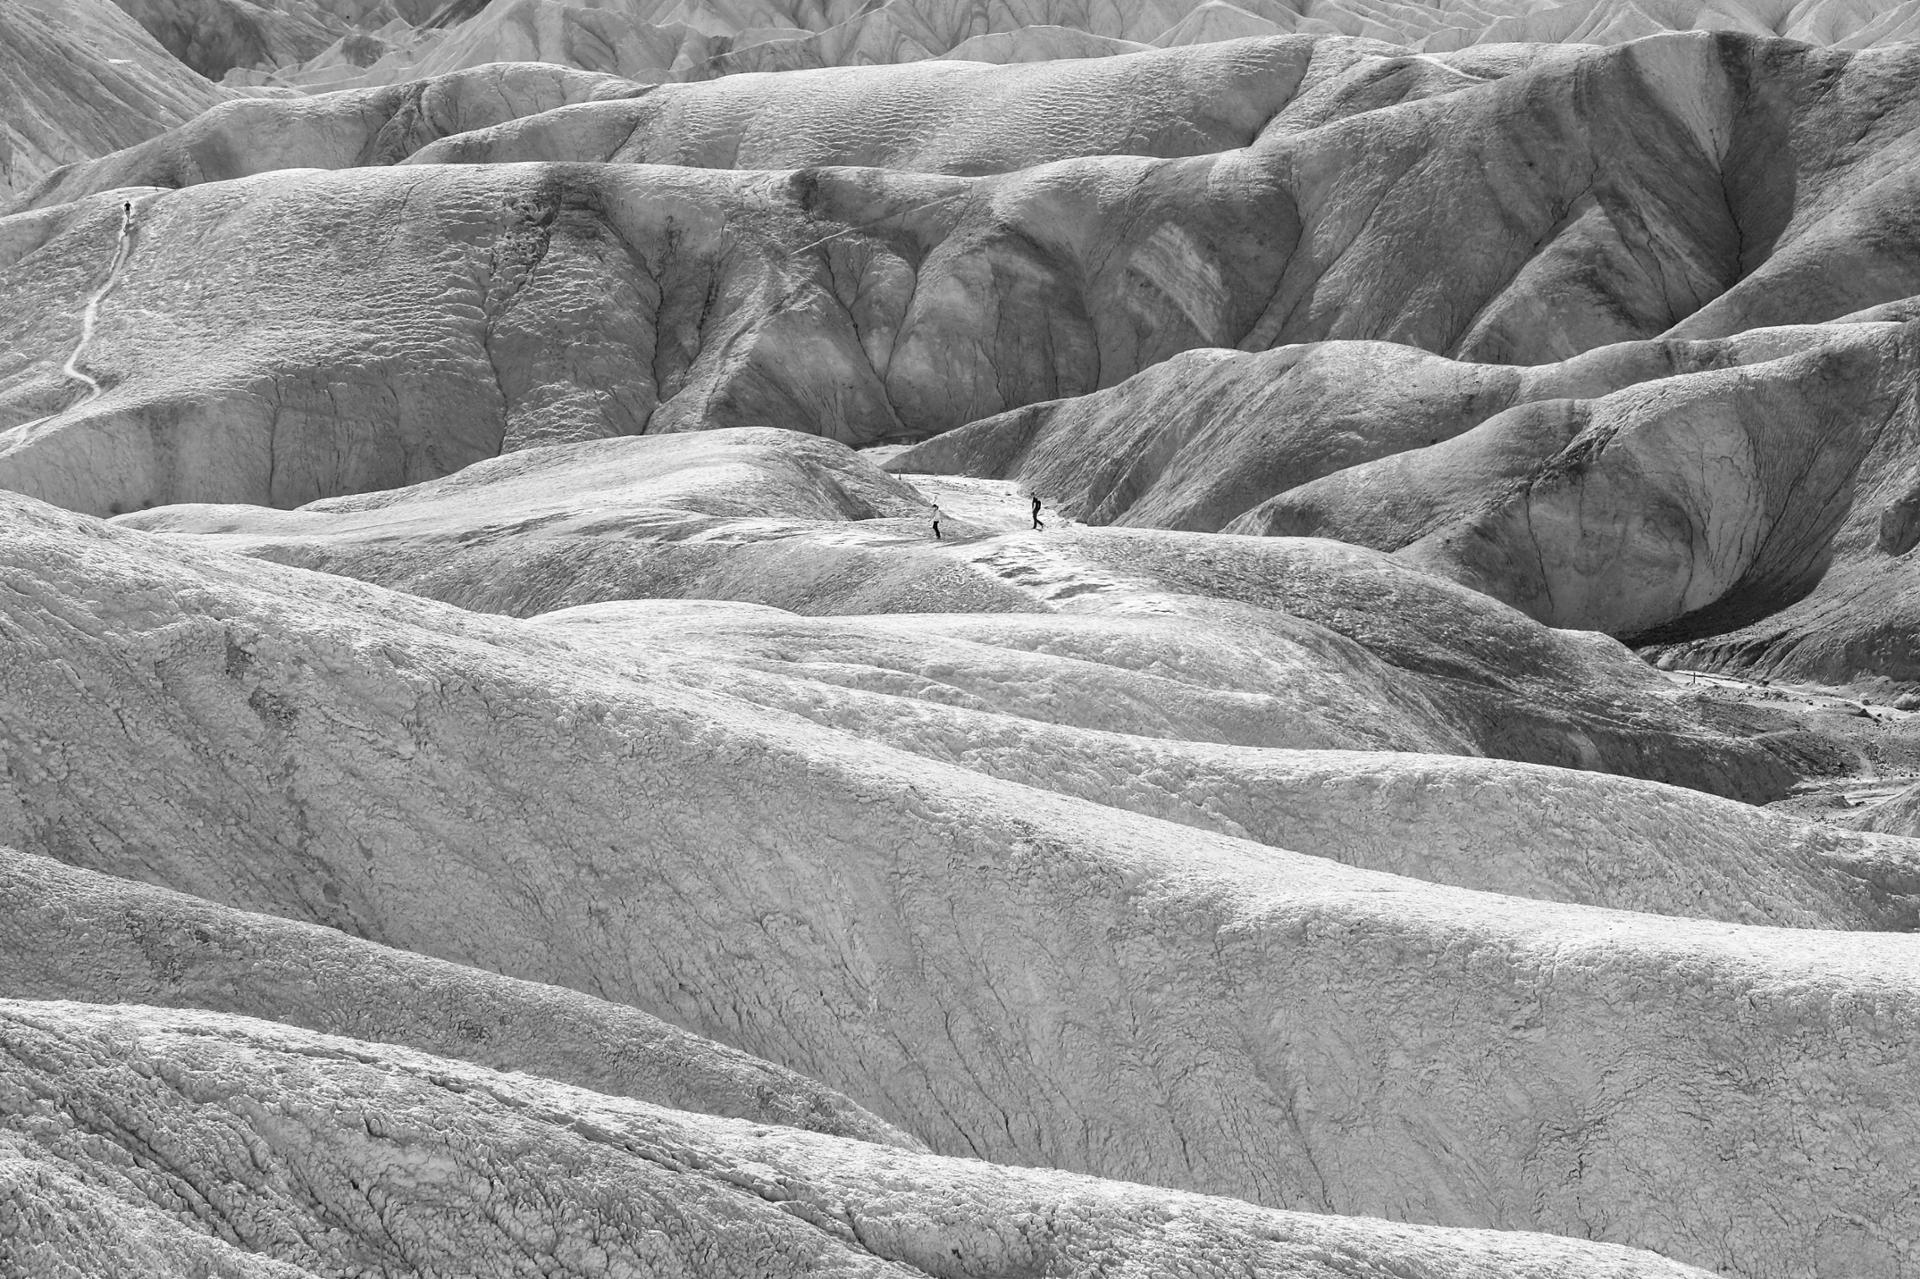 zabriskie point exploration